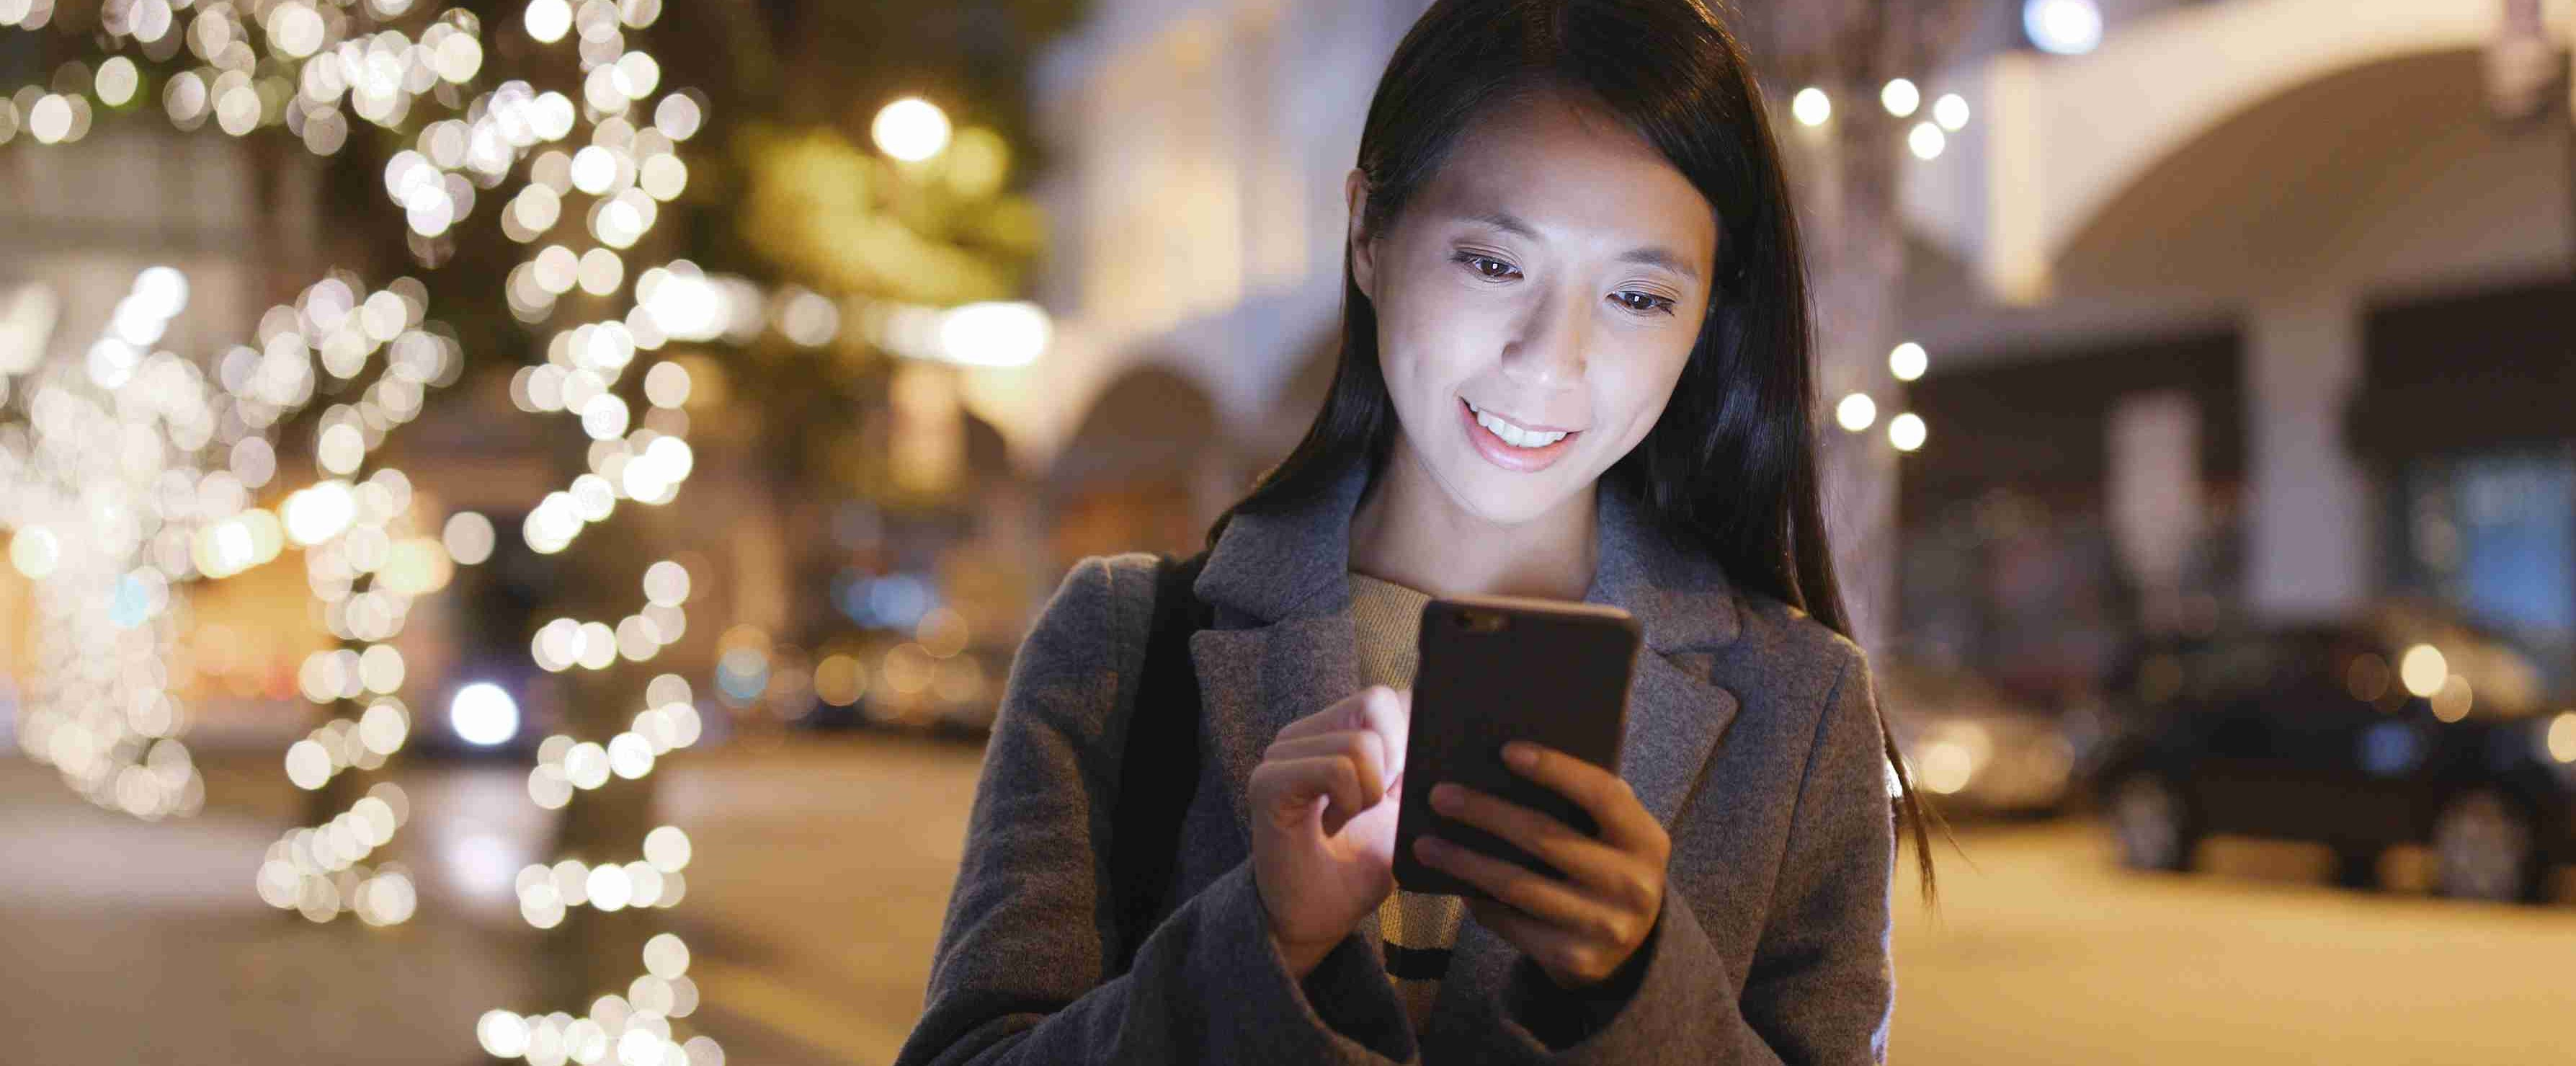 Image of a woman with mobile phone